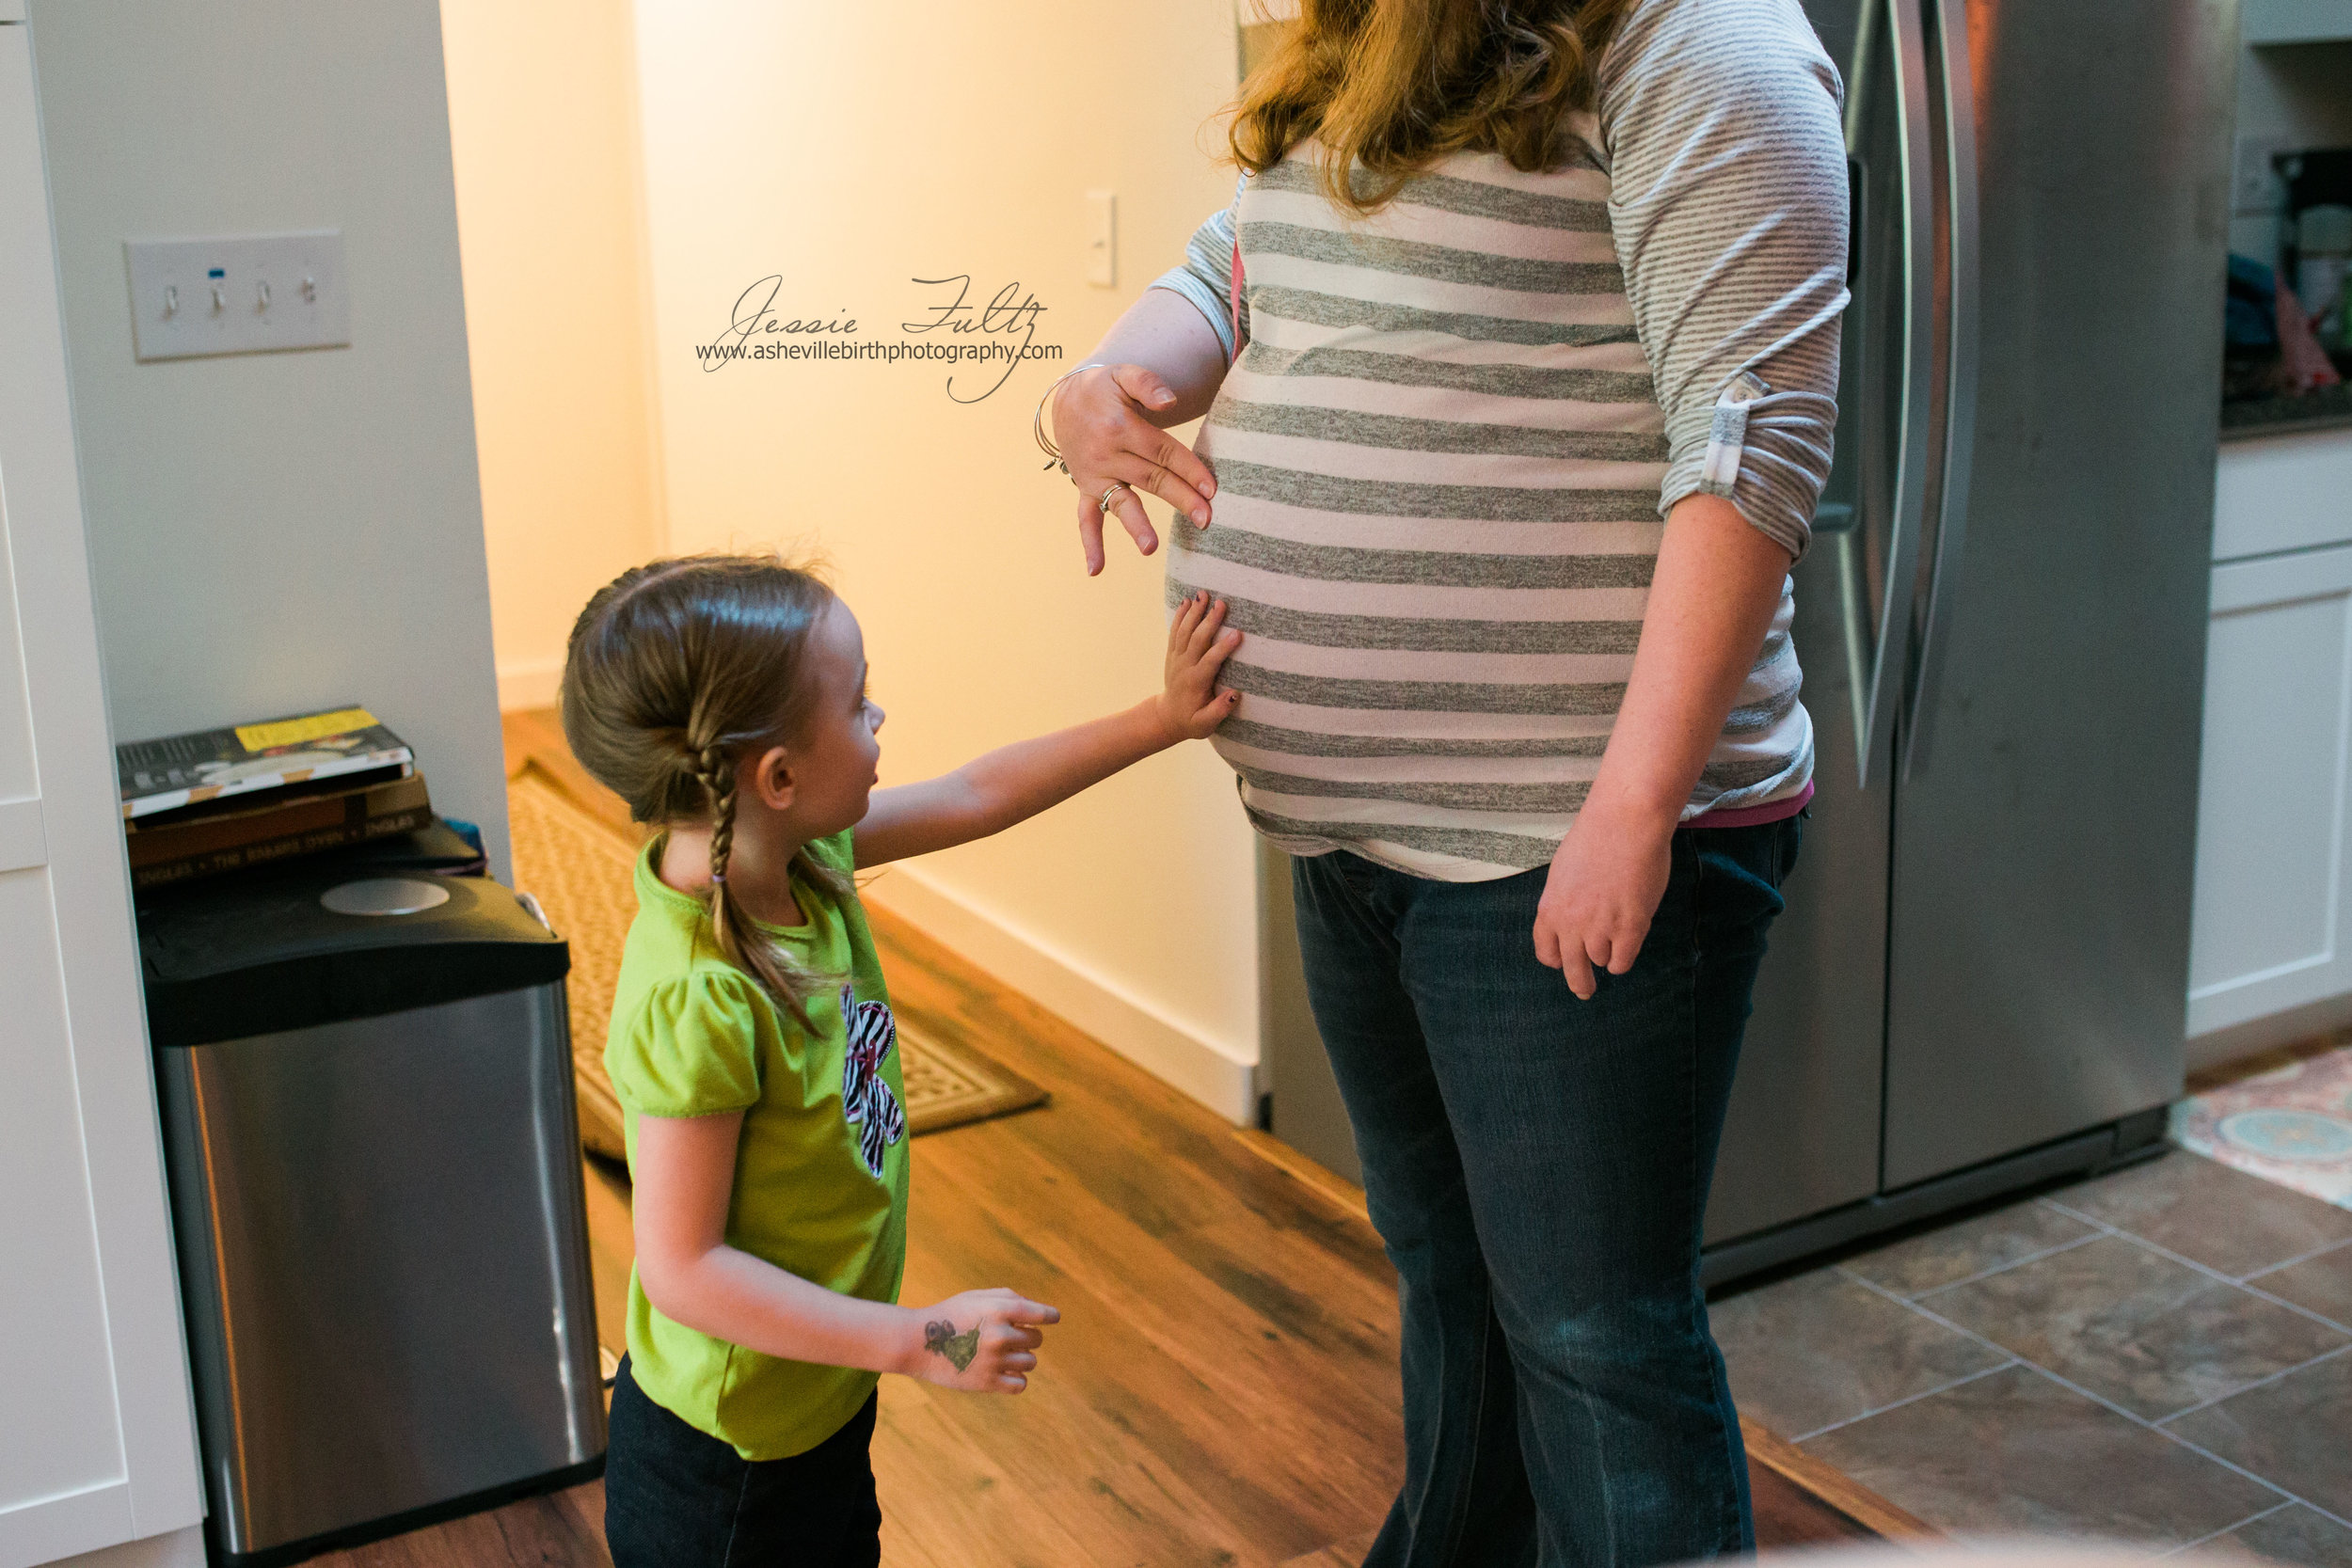 a young girl in a green shirt and pigtails touching a pregnant woman's belly